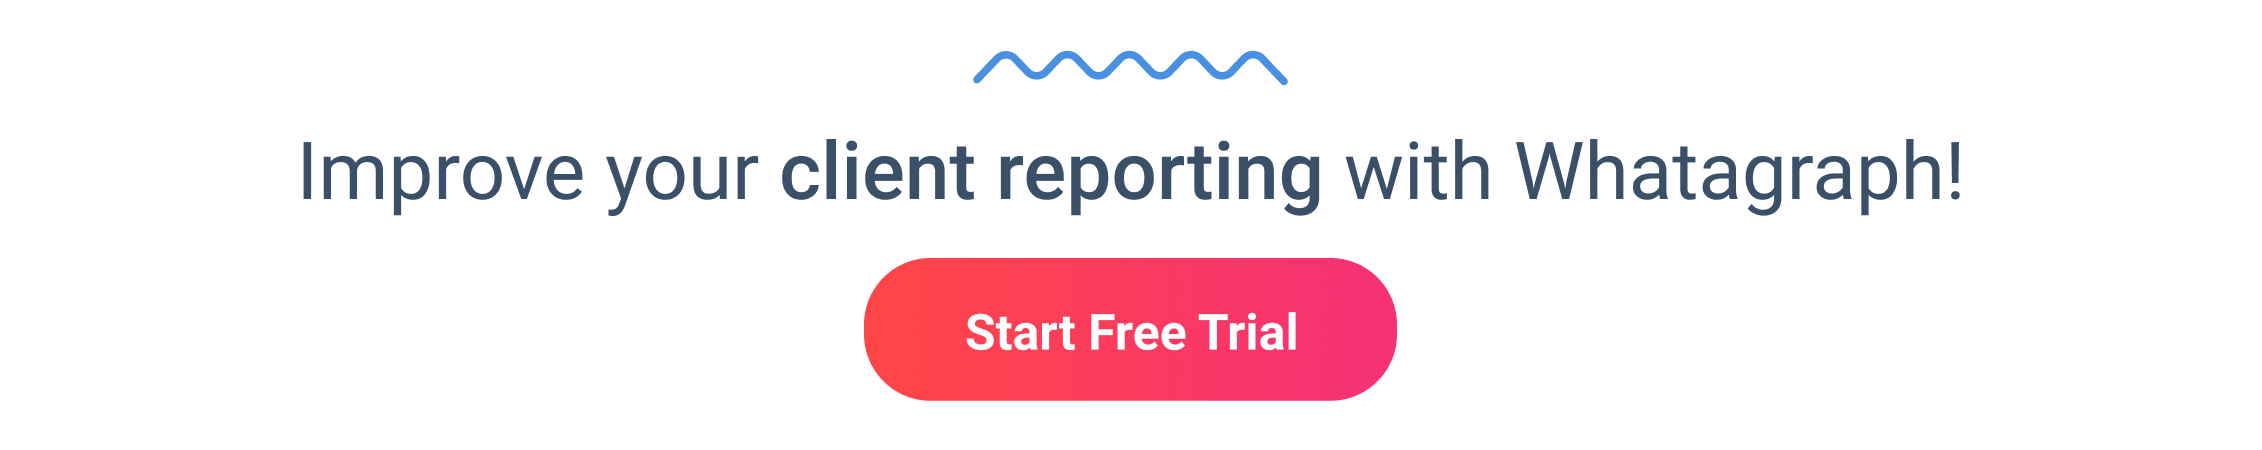 Improve your client reporting with Whatagraph